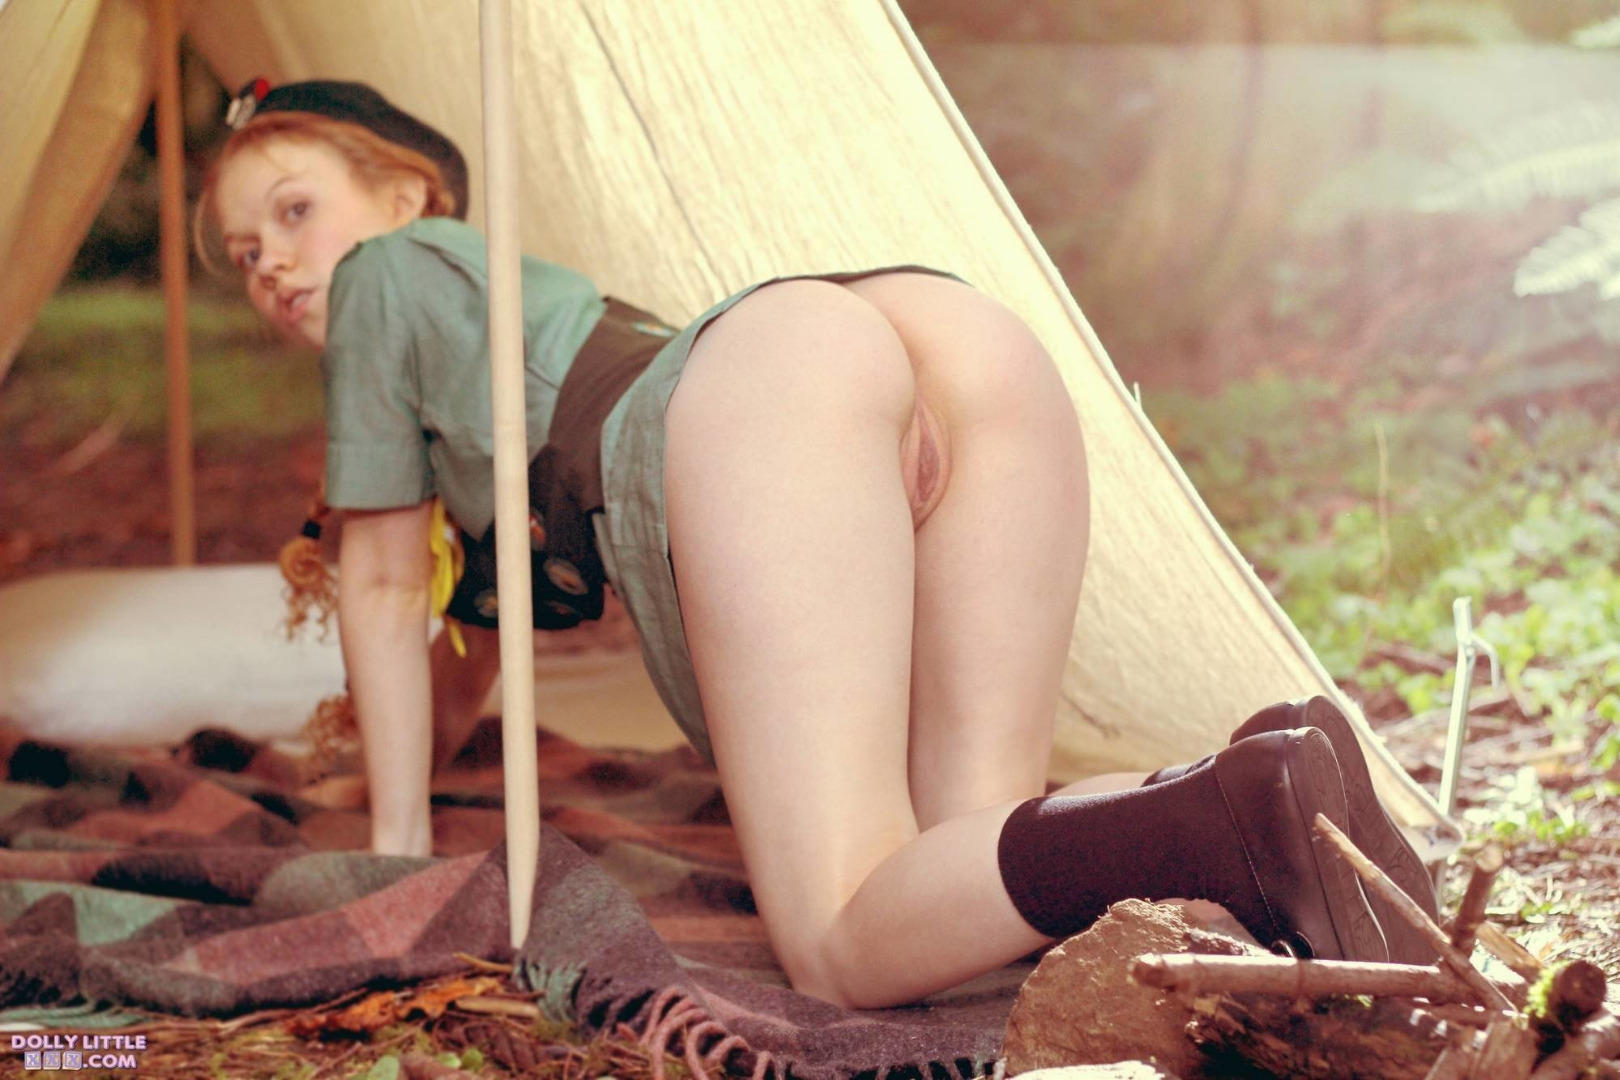 sexy pigtailed brunette teen babe nicole teasing us with her tits #dollylittle #redhead #tiny #tinyteen #teen #ginger #ageplay #ddlg #girlscout